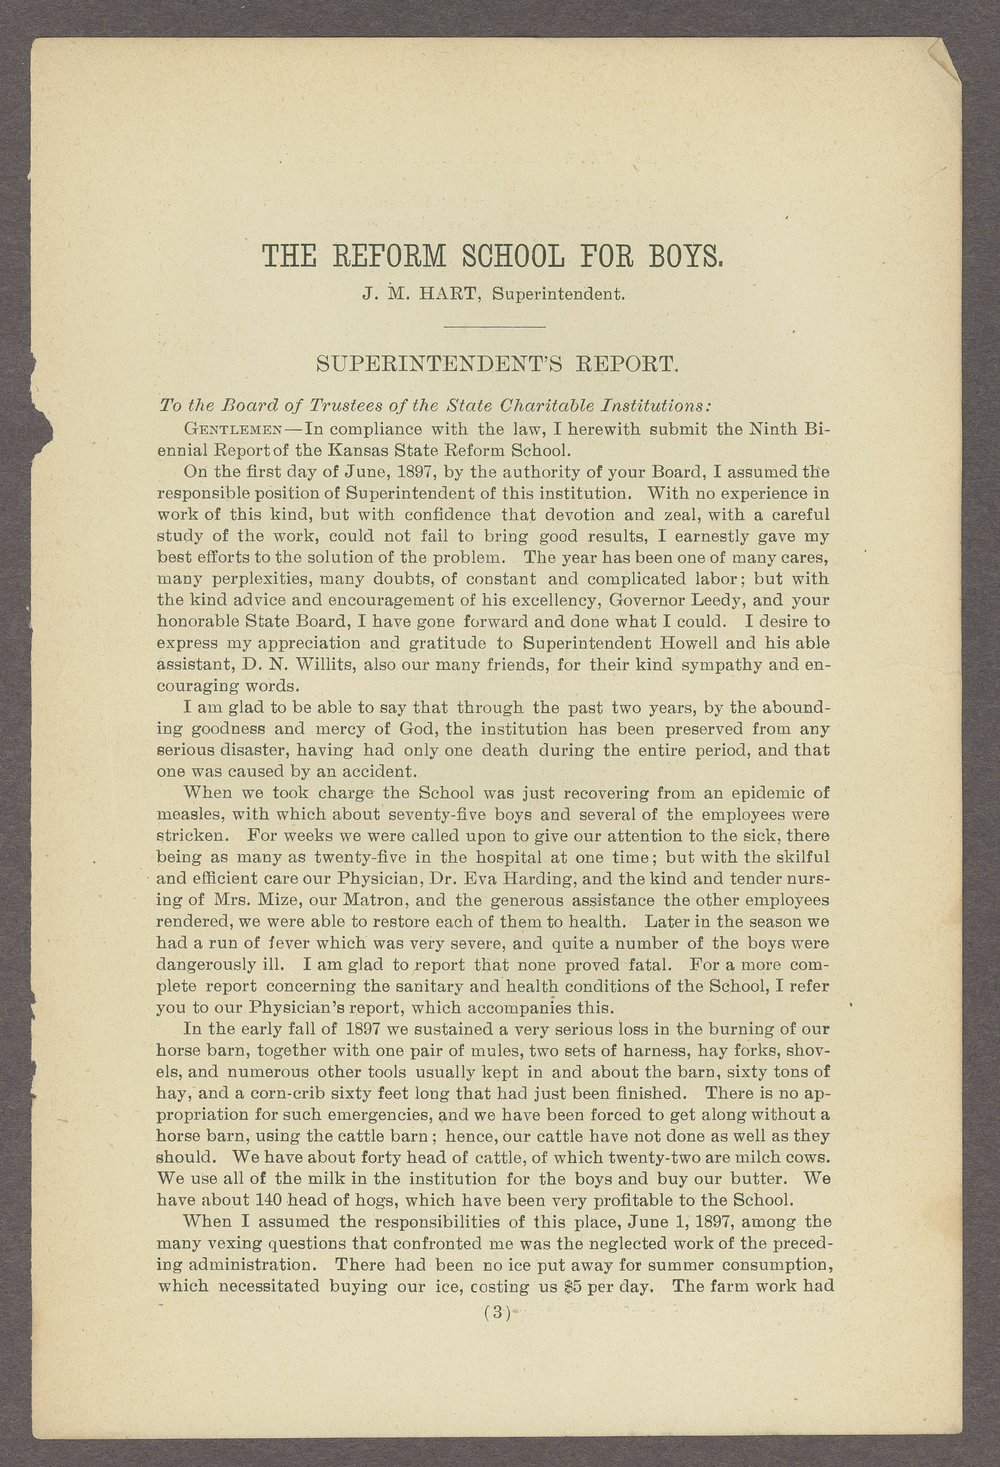 Biennial report of the State Reform School,1898 - 3